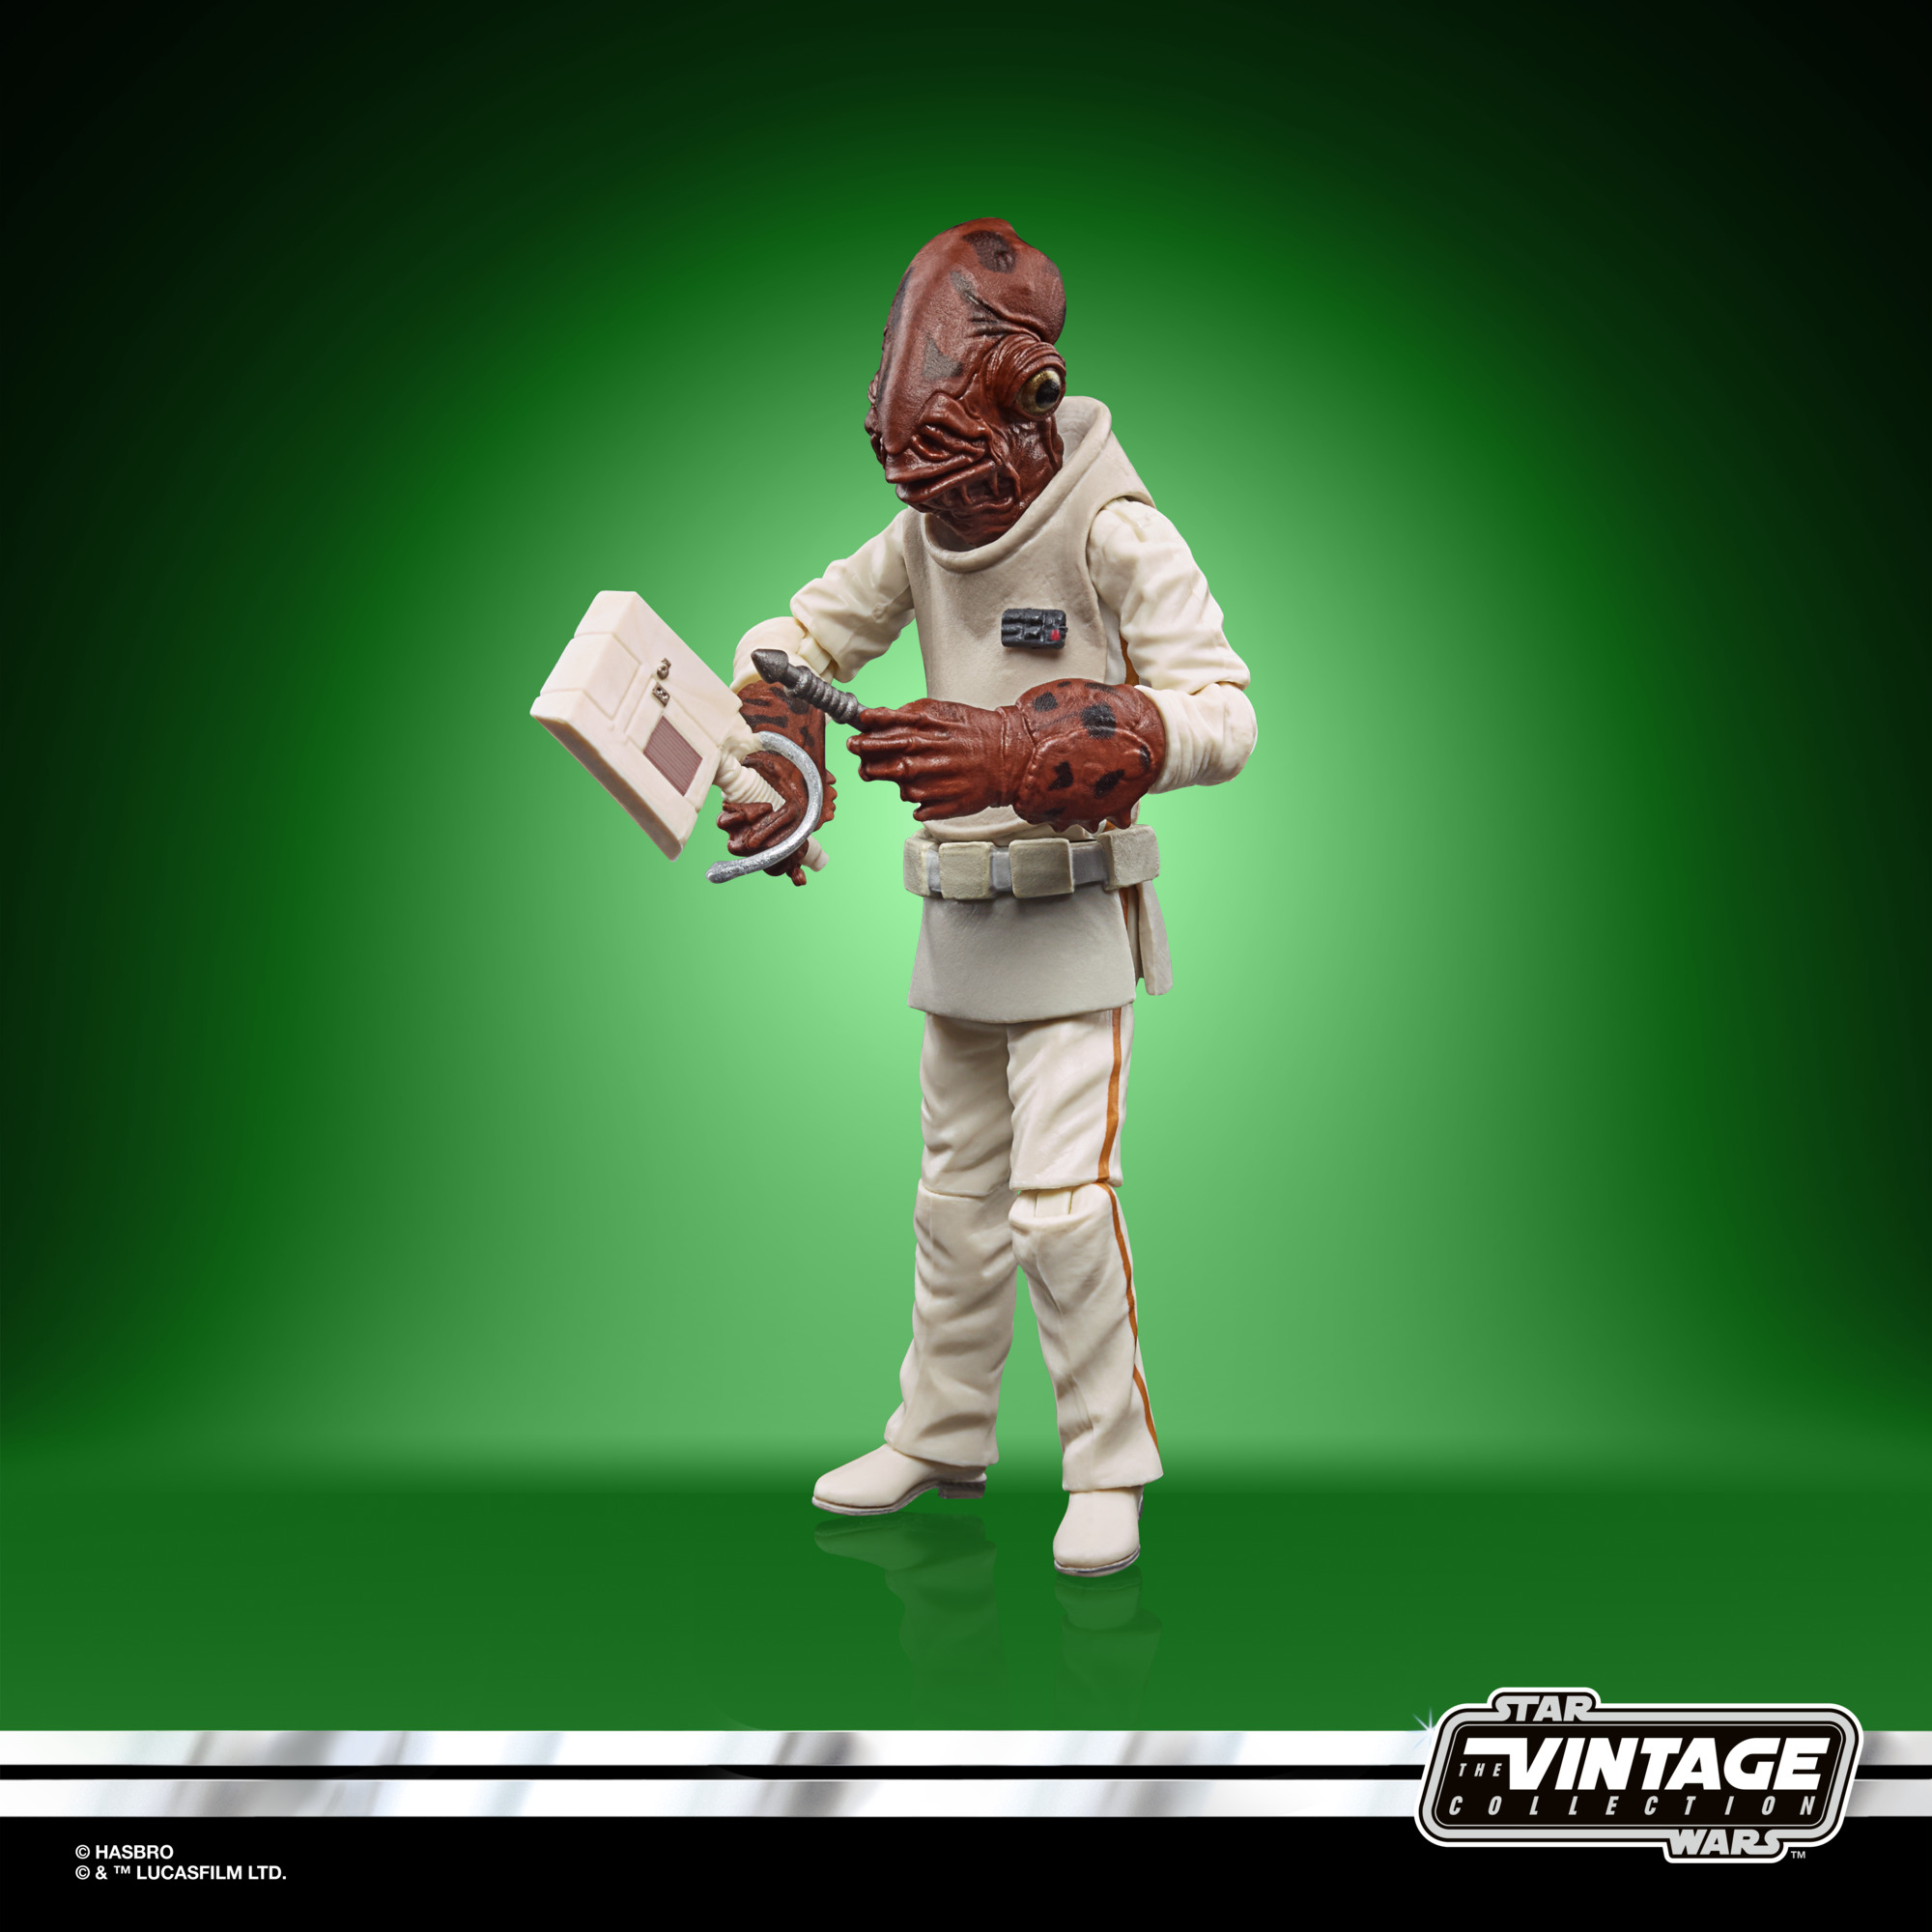 STAR WARS THE VINTAGE COLLECTION 3.75-INCH ADMIRAL ACKBAR Figure – oop(6)